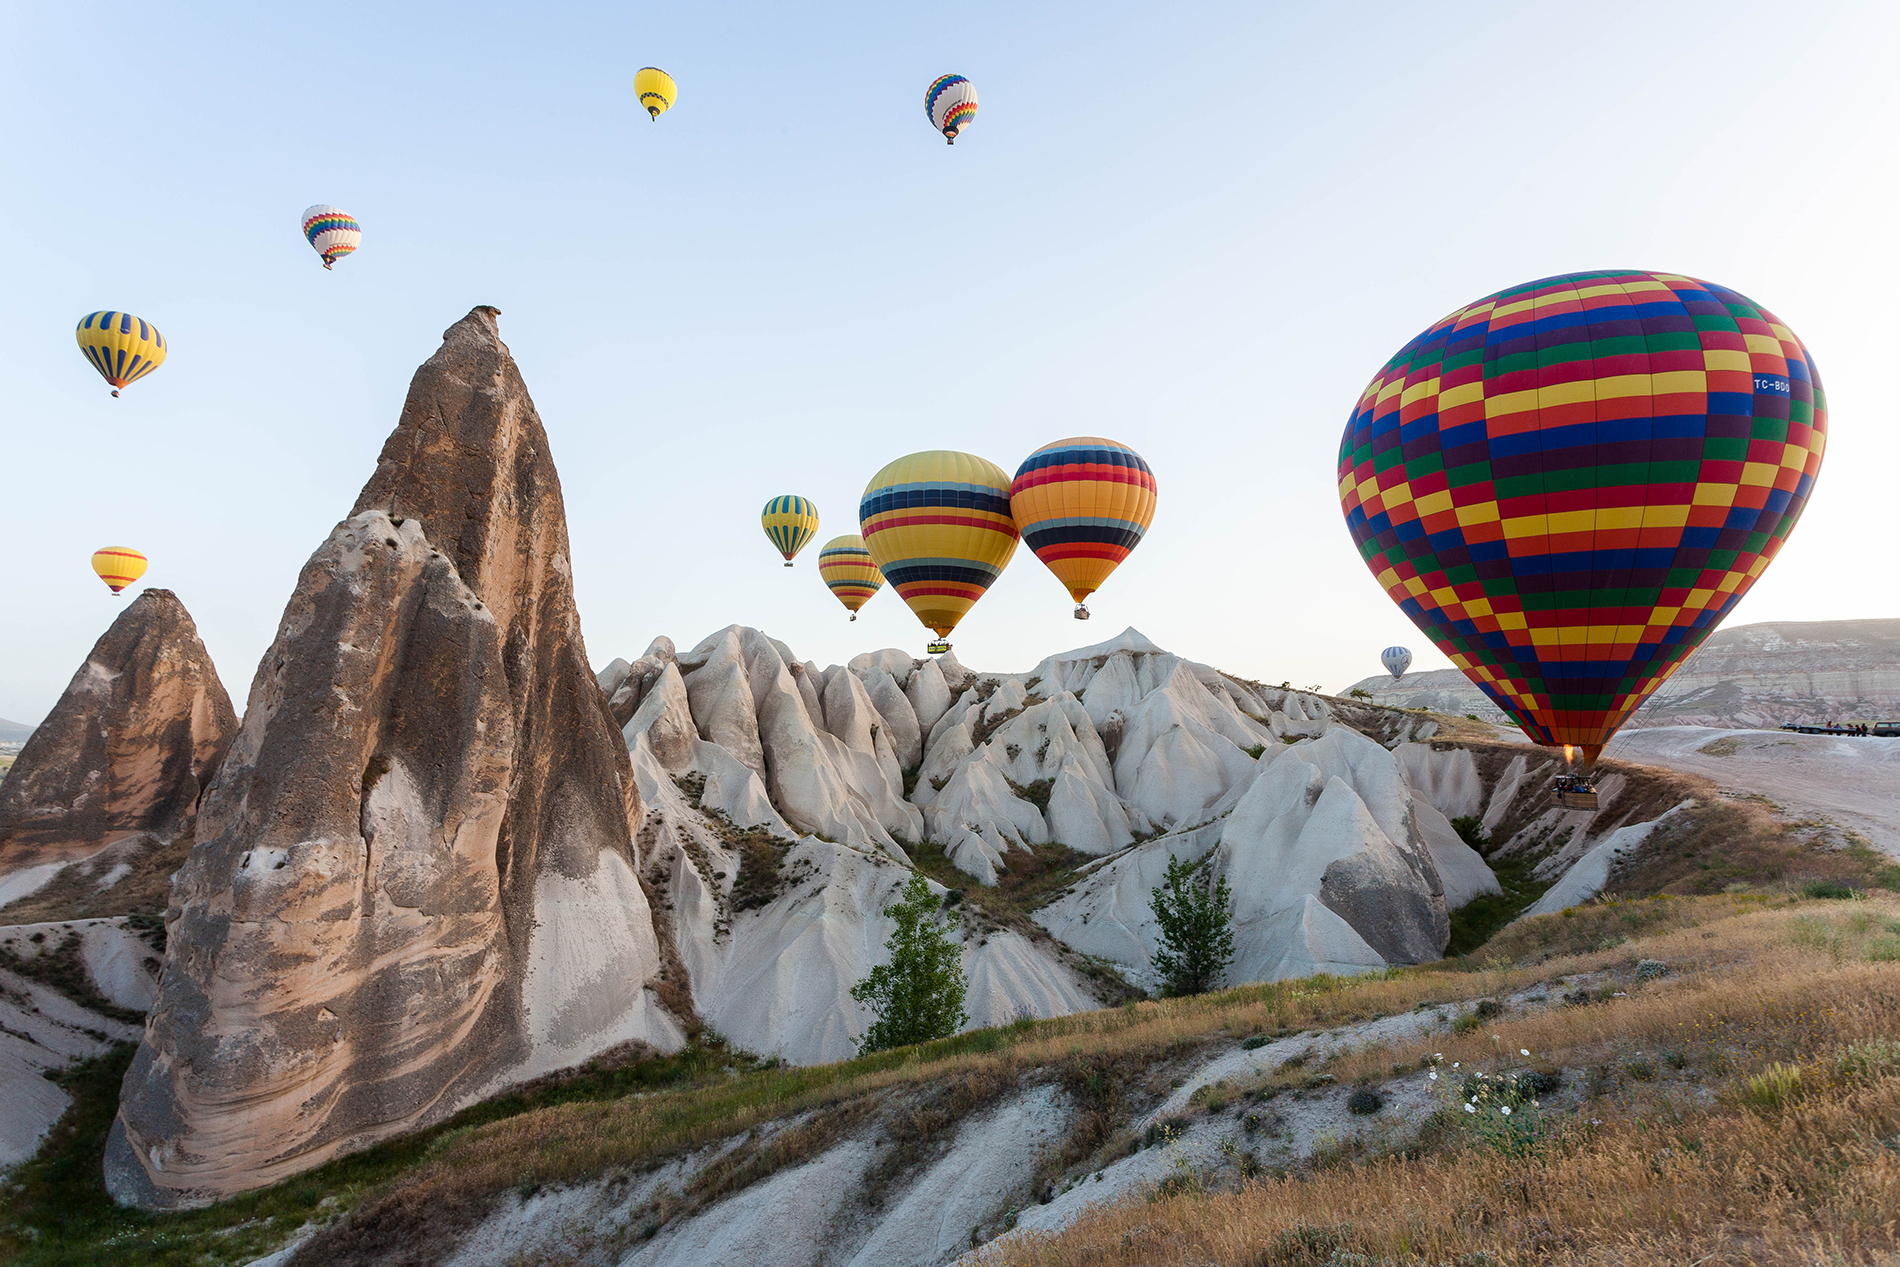 Rugged hills and hot air balloon scenery  54053